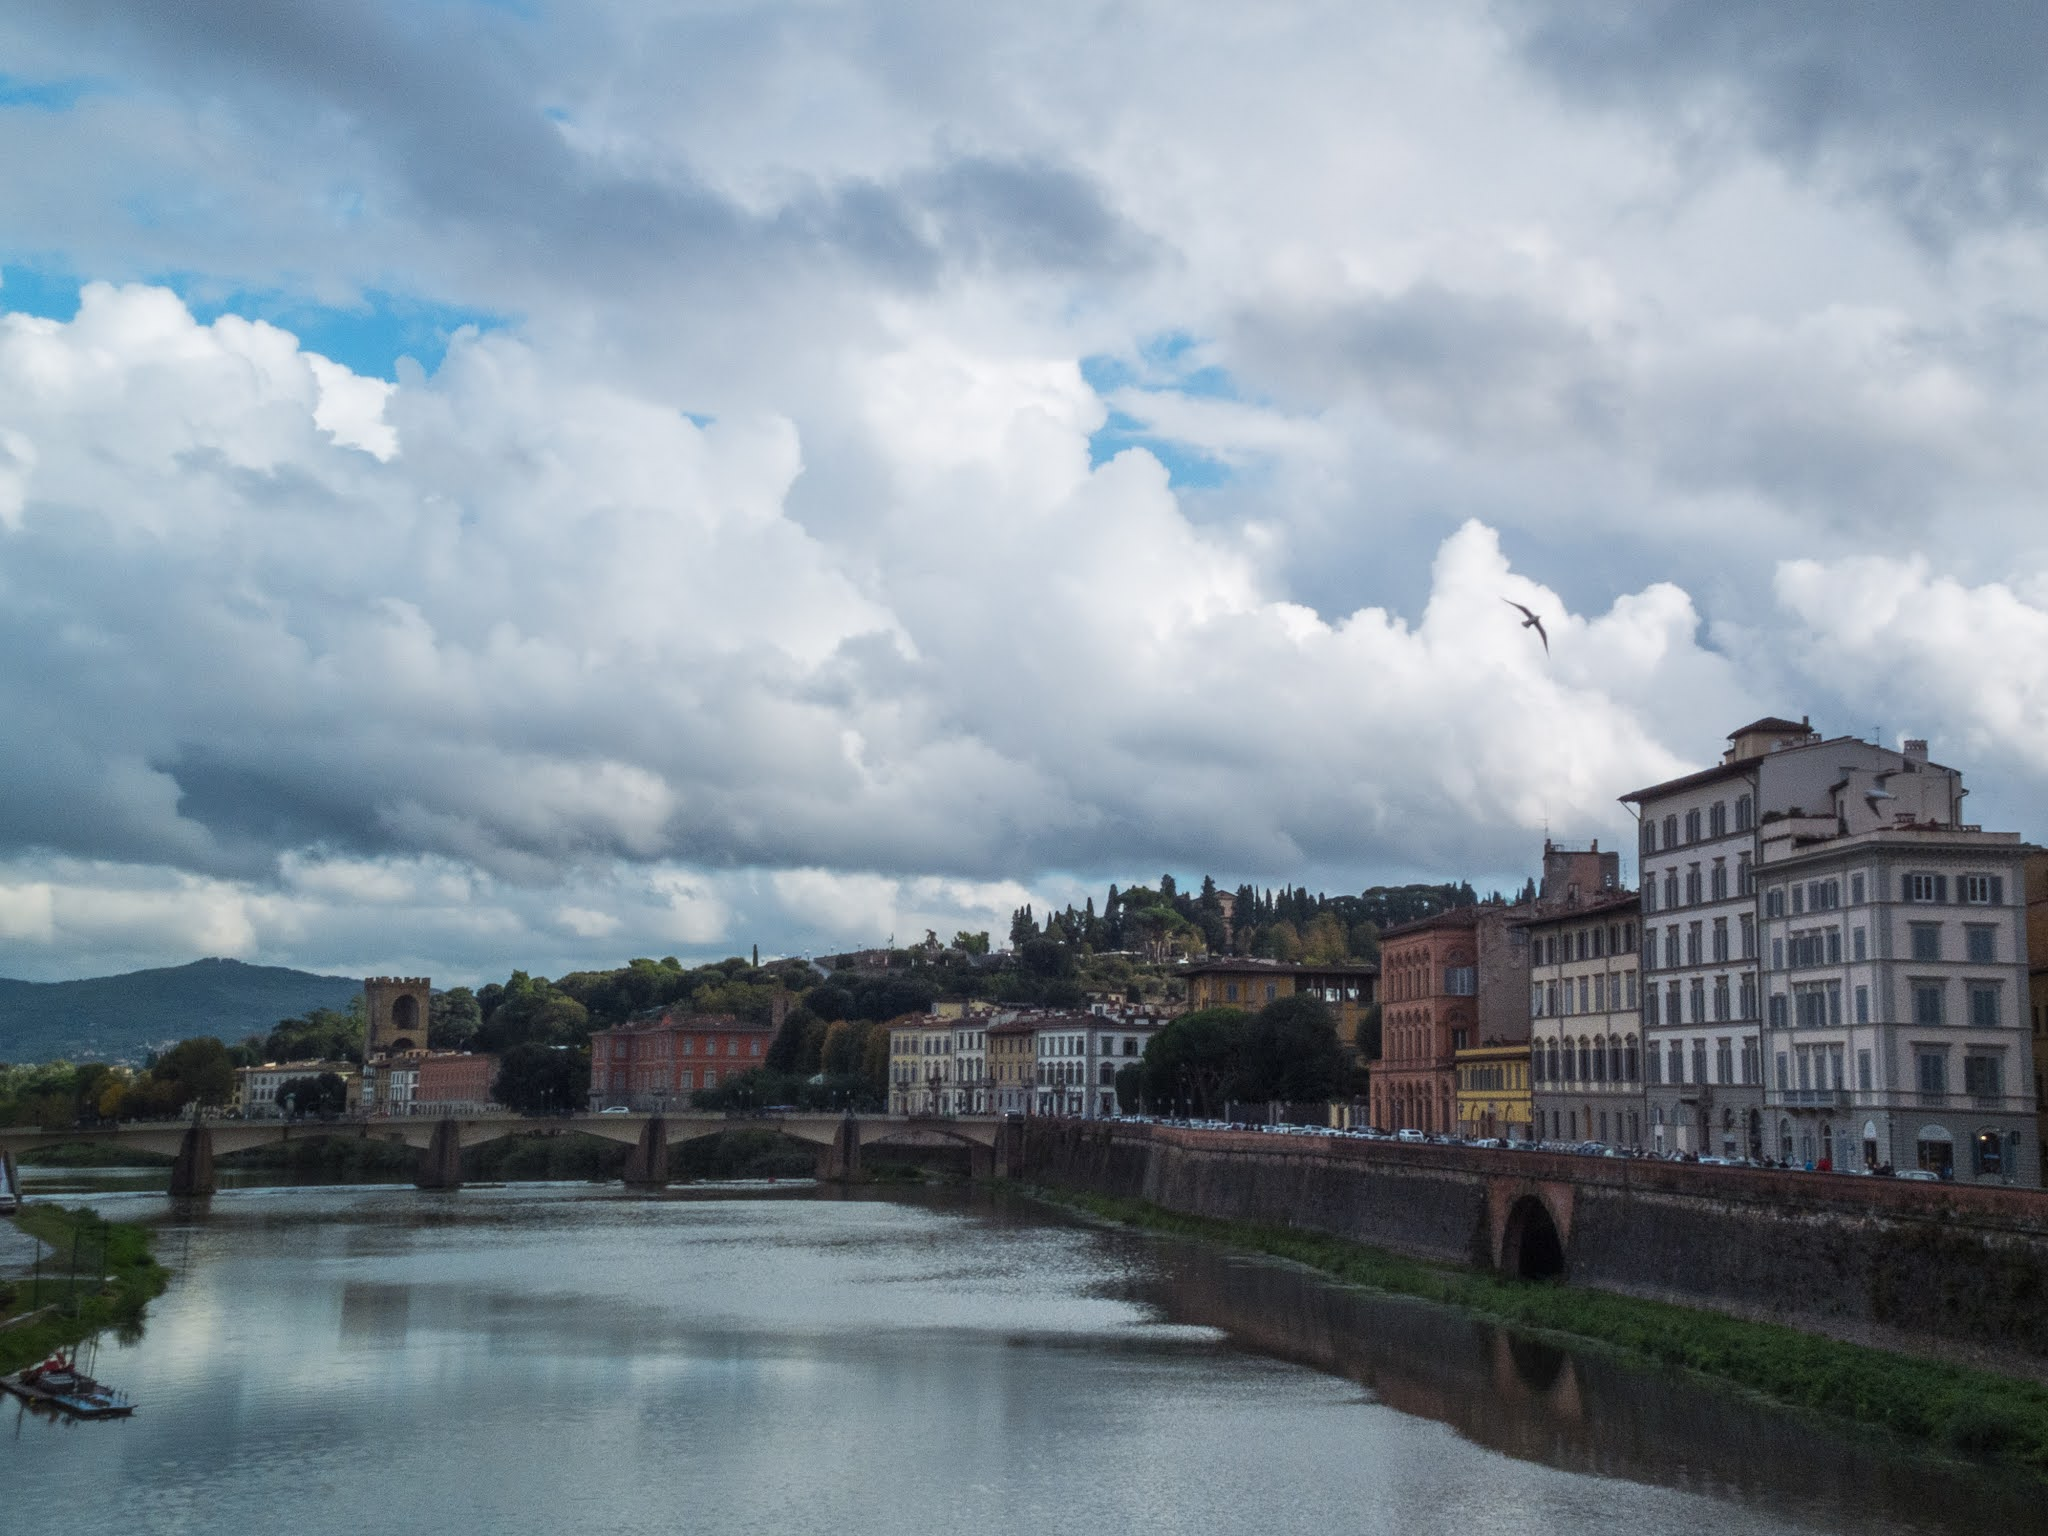 Ponte alle Grazie over the Arno river in Florence on a cloudy day.